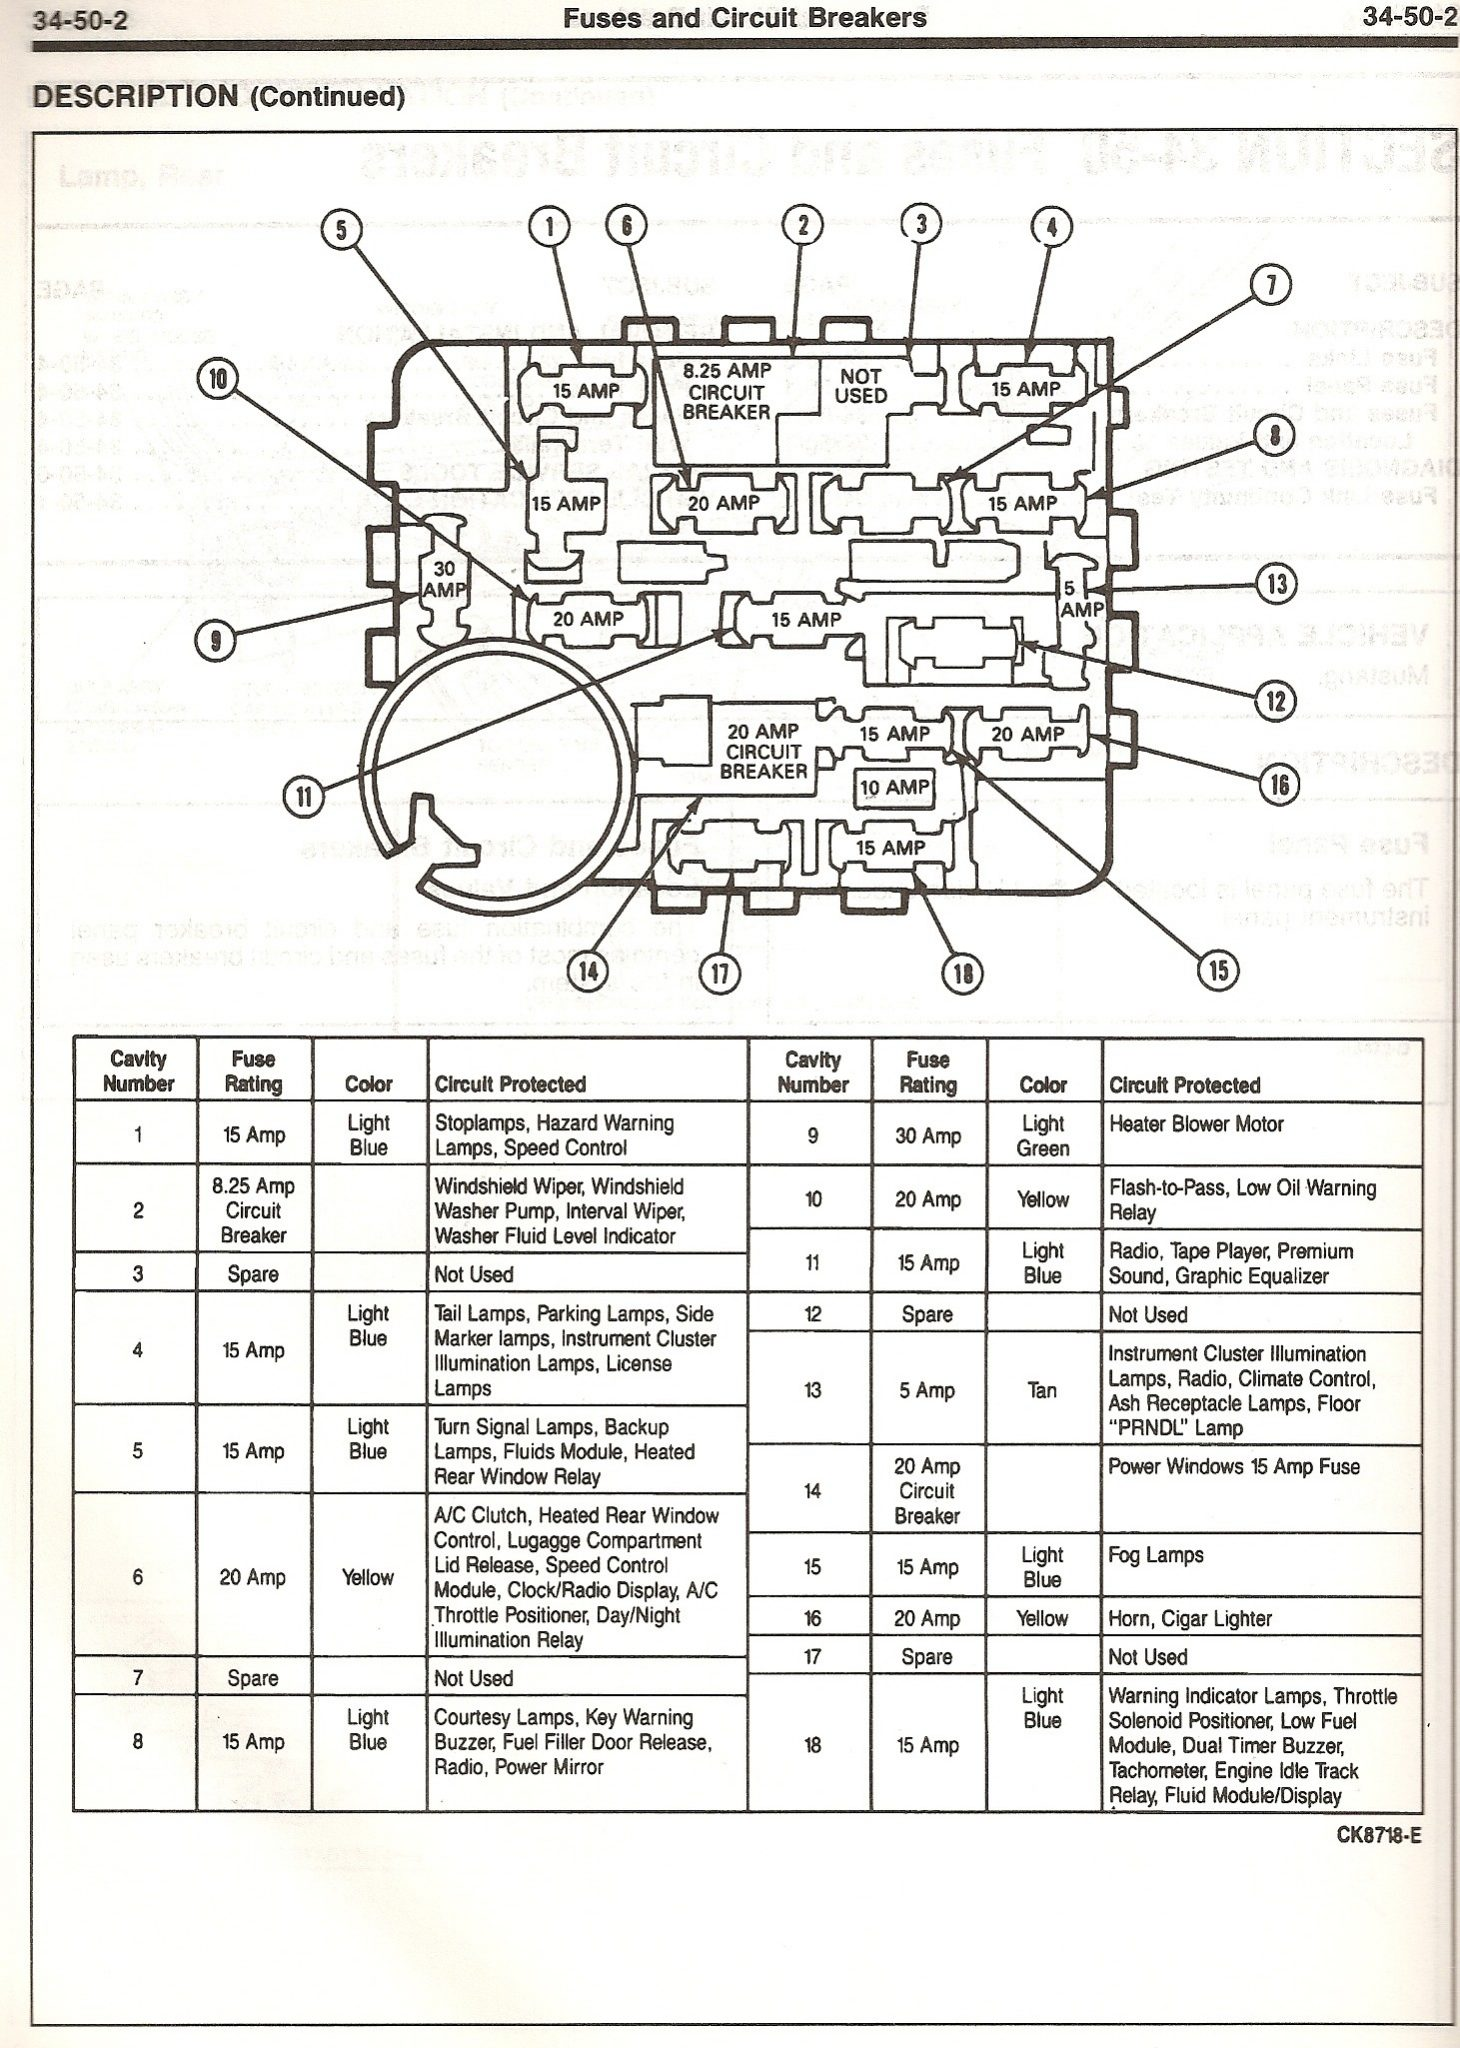 2005 Saturn Ion Fuse Box Diagram likewise 04 Ford 500 Fuse Box Diagram moreover Discussion T46511 ds694061 moreover 2002 Ford Mustang Fuse Panel Under Dash Diagram Mustang furthermore Ford Freestyle  pressor Relay Switch Location. on 2006 ford five hundred fuse box diagram